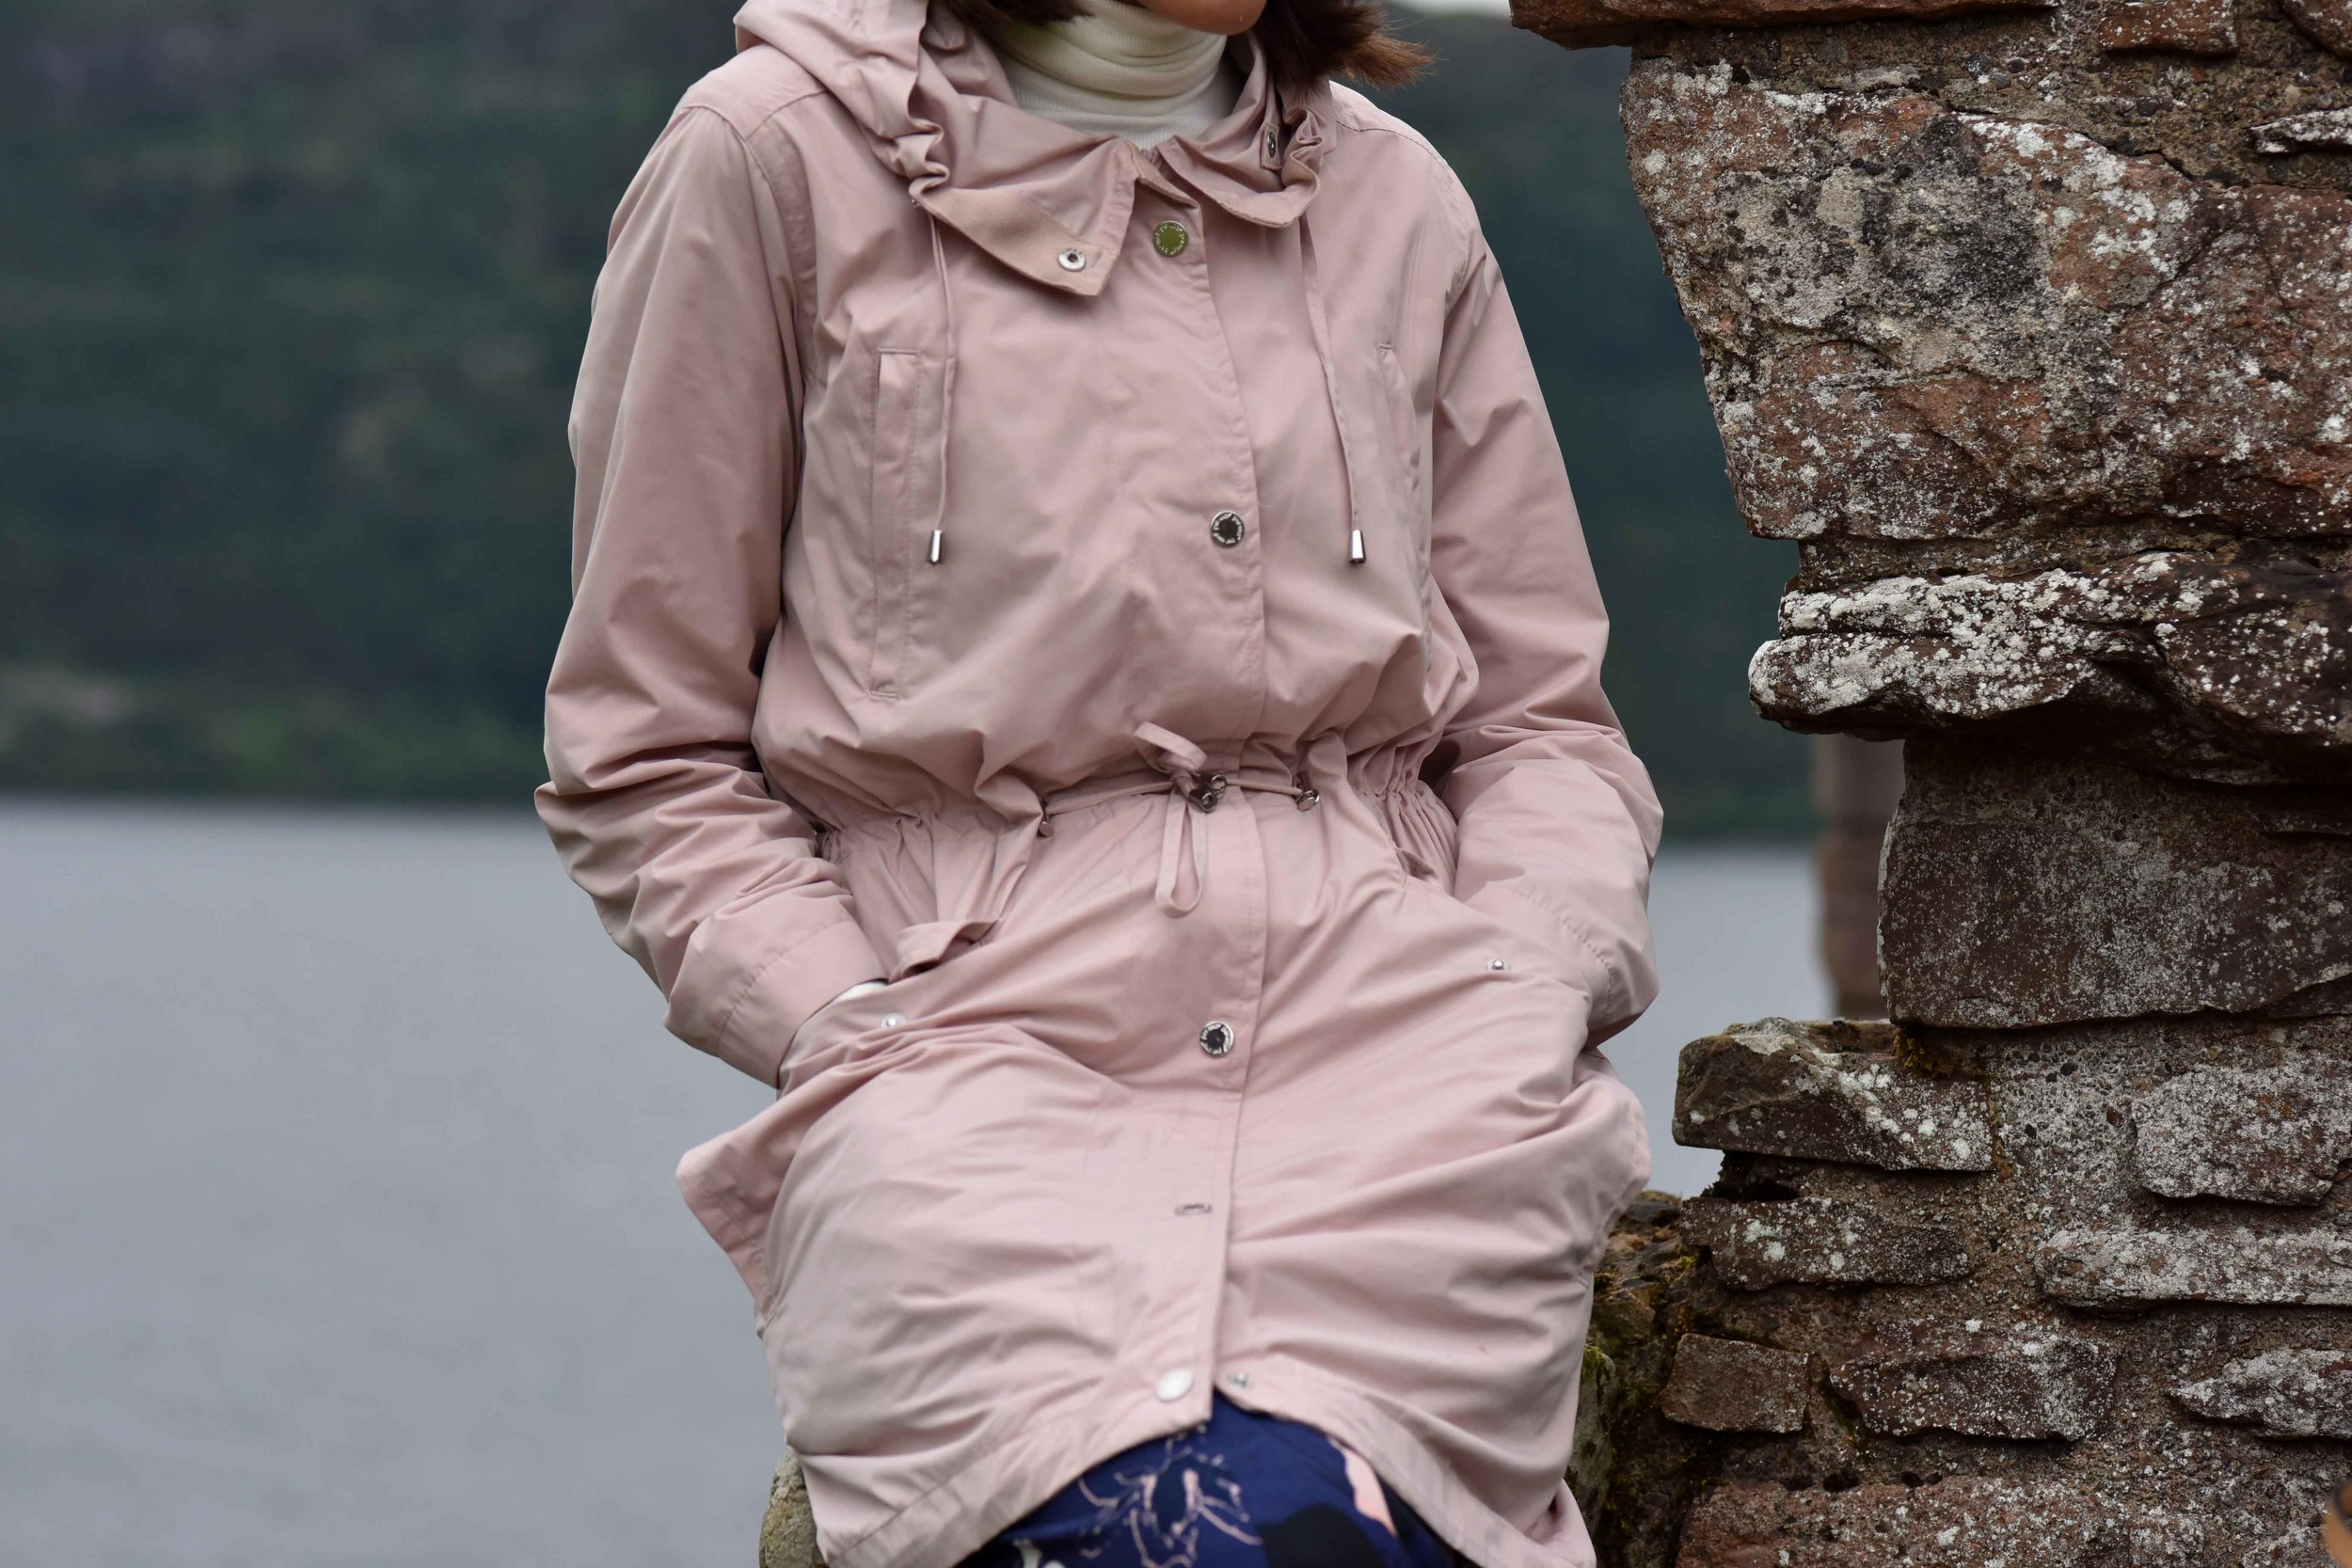 Pink Stormwear M&S  jacket, Urquhart Castle, Loch Ness, Scotland. Image©thingstodot.com